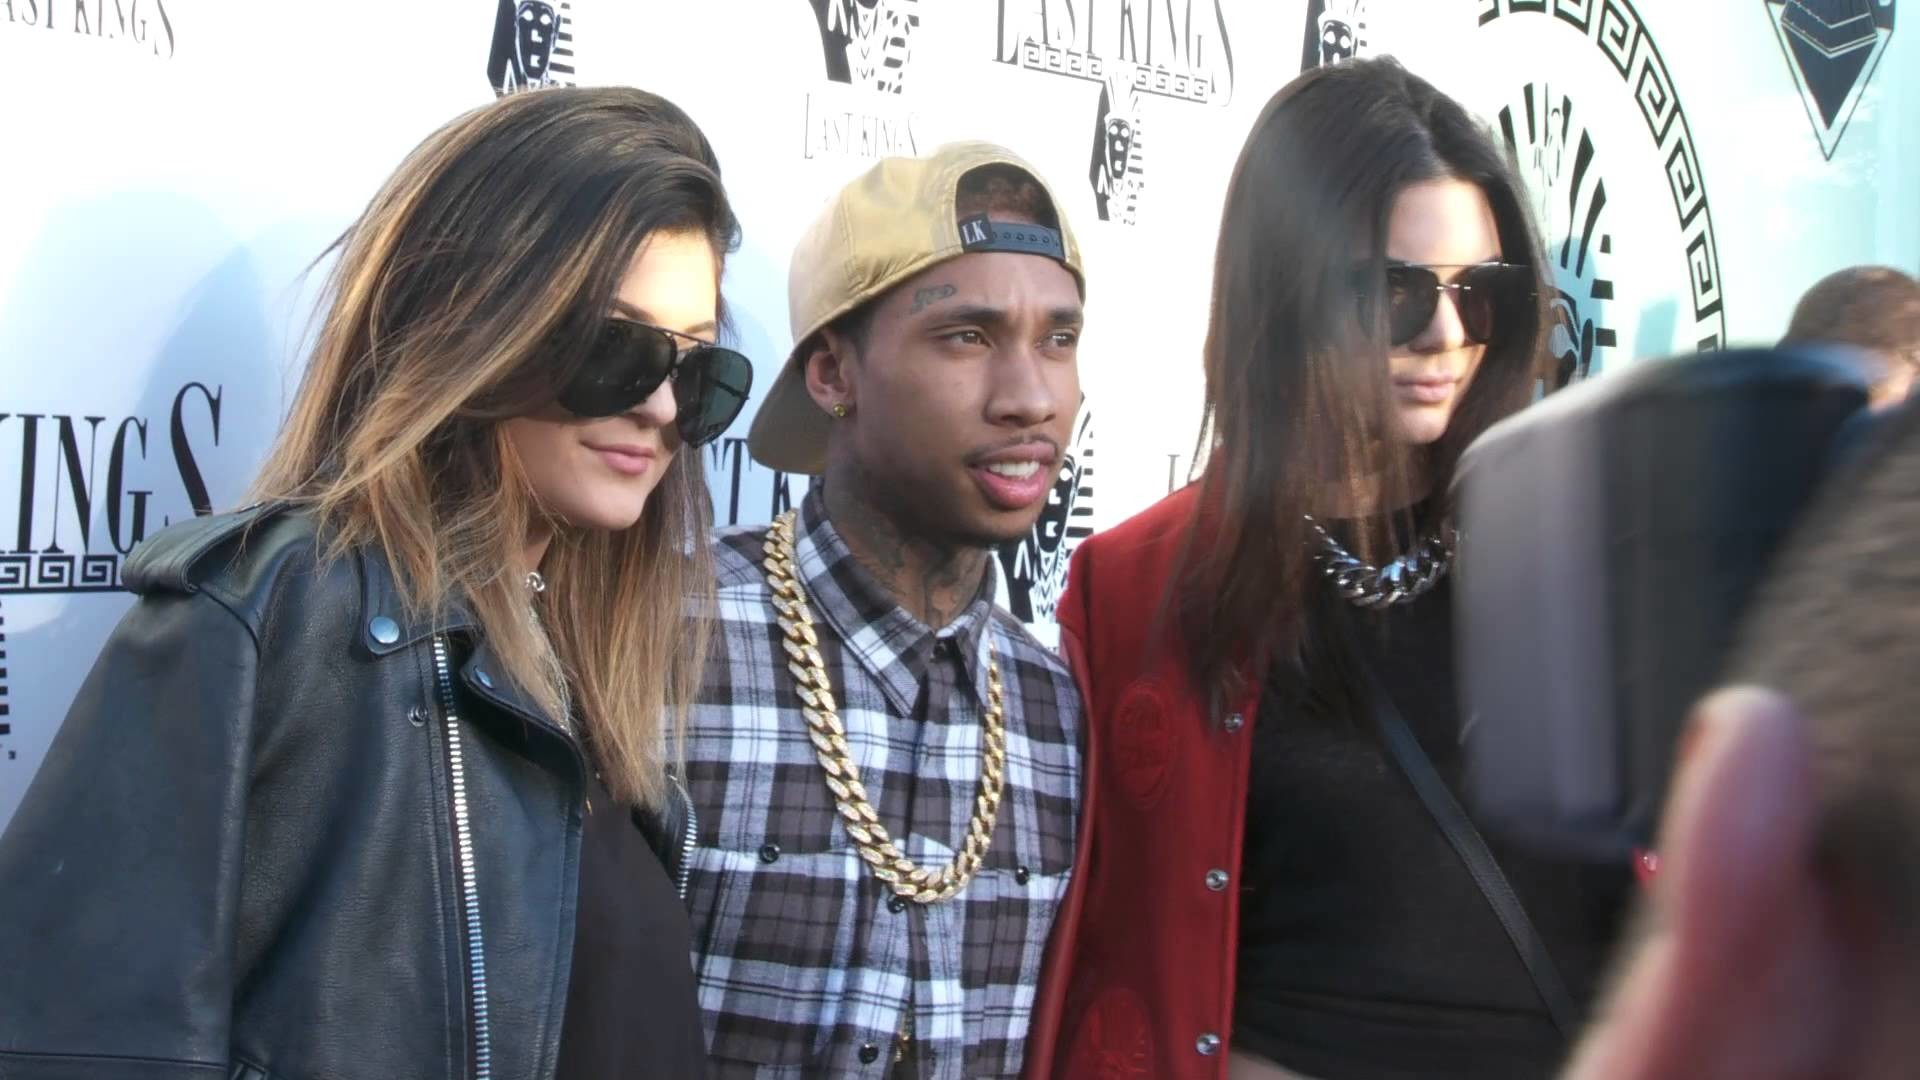 1920x1080 Coool Flame TV LA: Tyga opens new store 'Last Kings' on Melrose Blvd